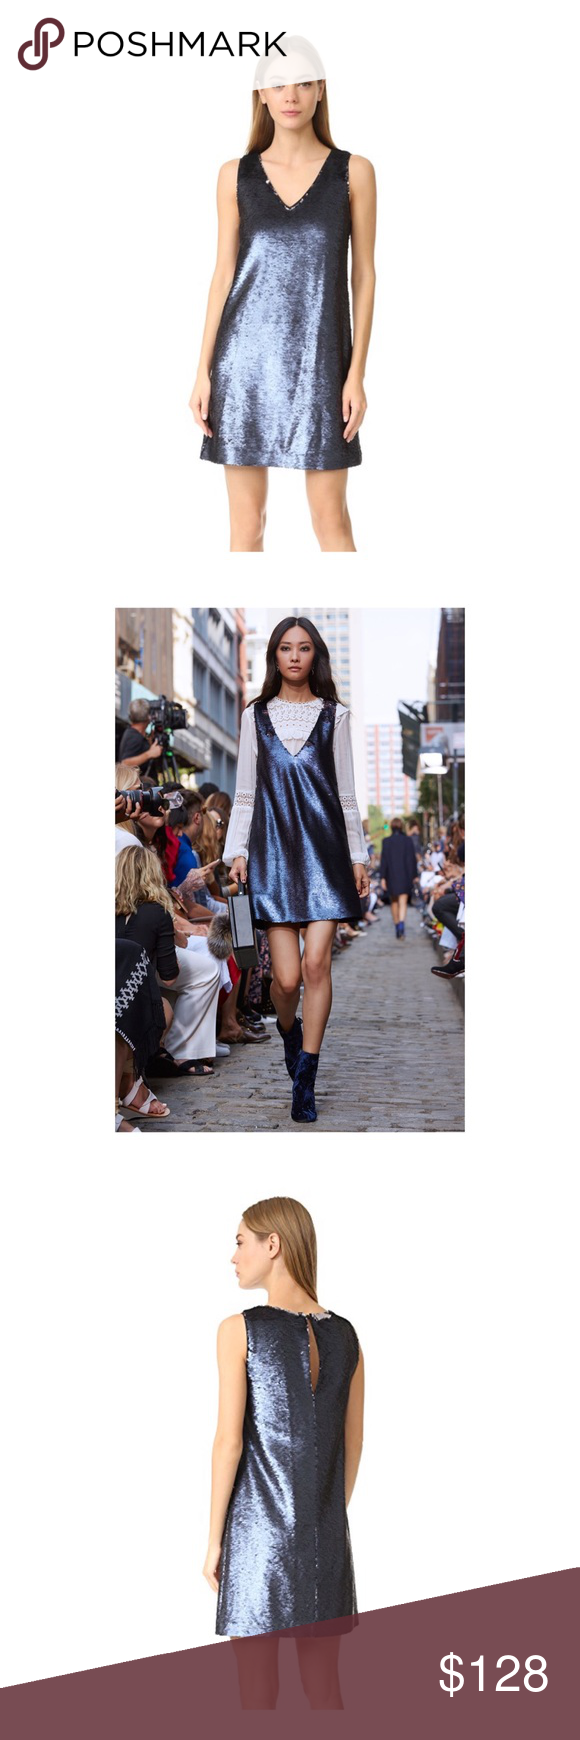 Rebecca Minkoff Claire Sequin Dress in Navy Get ready for the holidays in this adorable Rebecca Minkoff sequin dress. Figure skimming A-line silhouette. 2 Tone  sequins with one matt and one polished side. V-neck line. Button back closure. Brand new with tags. Rebecca Minkoff Dresses